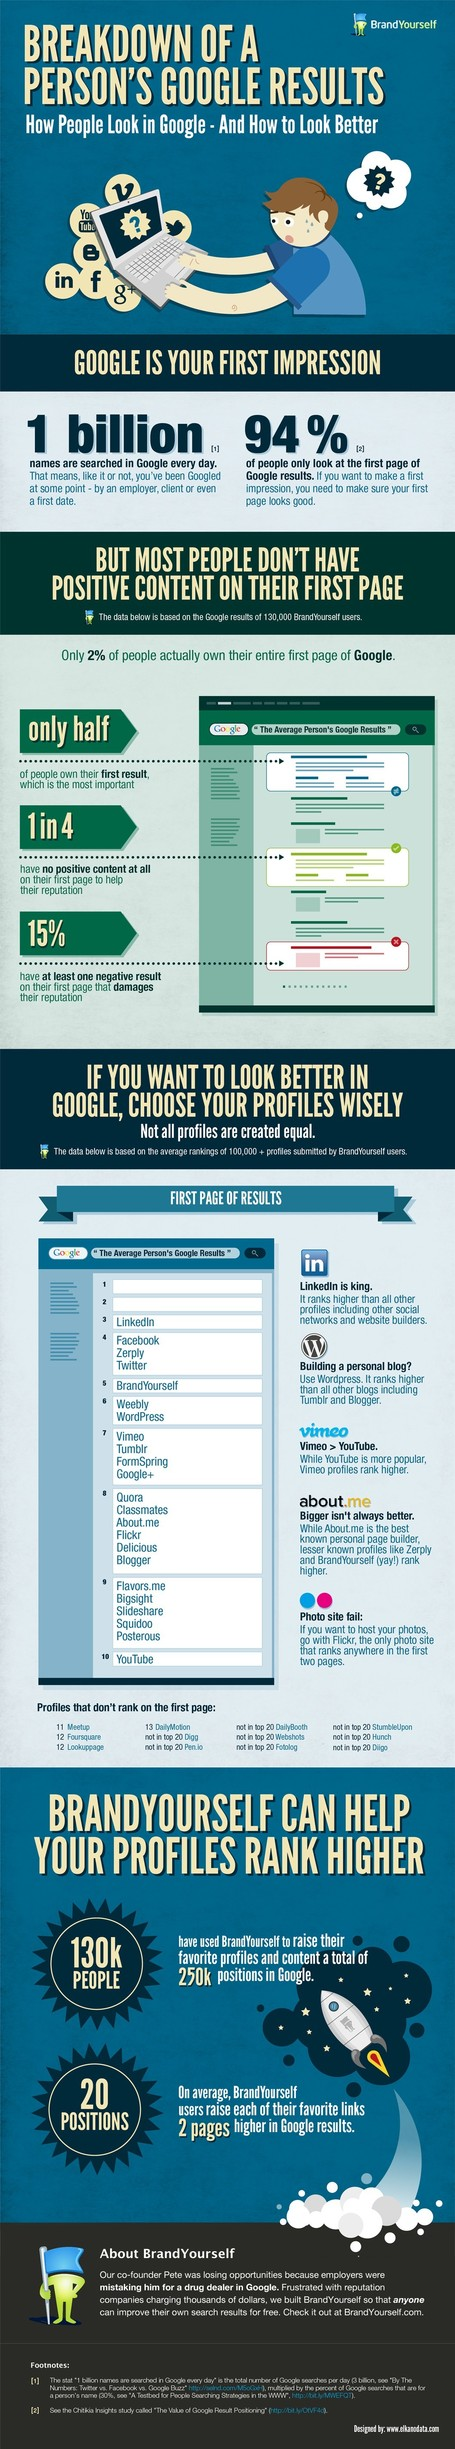 How to Use Social Media in Ranking up your Name Higher in Search Engine [Infographic] | Social Media (network, technology, blog, community, virtual reality, etc...) | Scoop.it